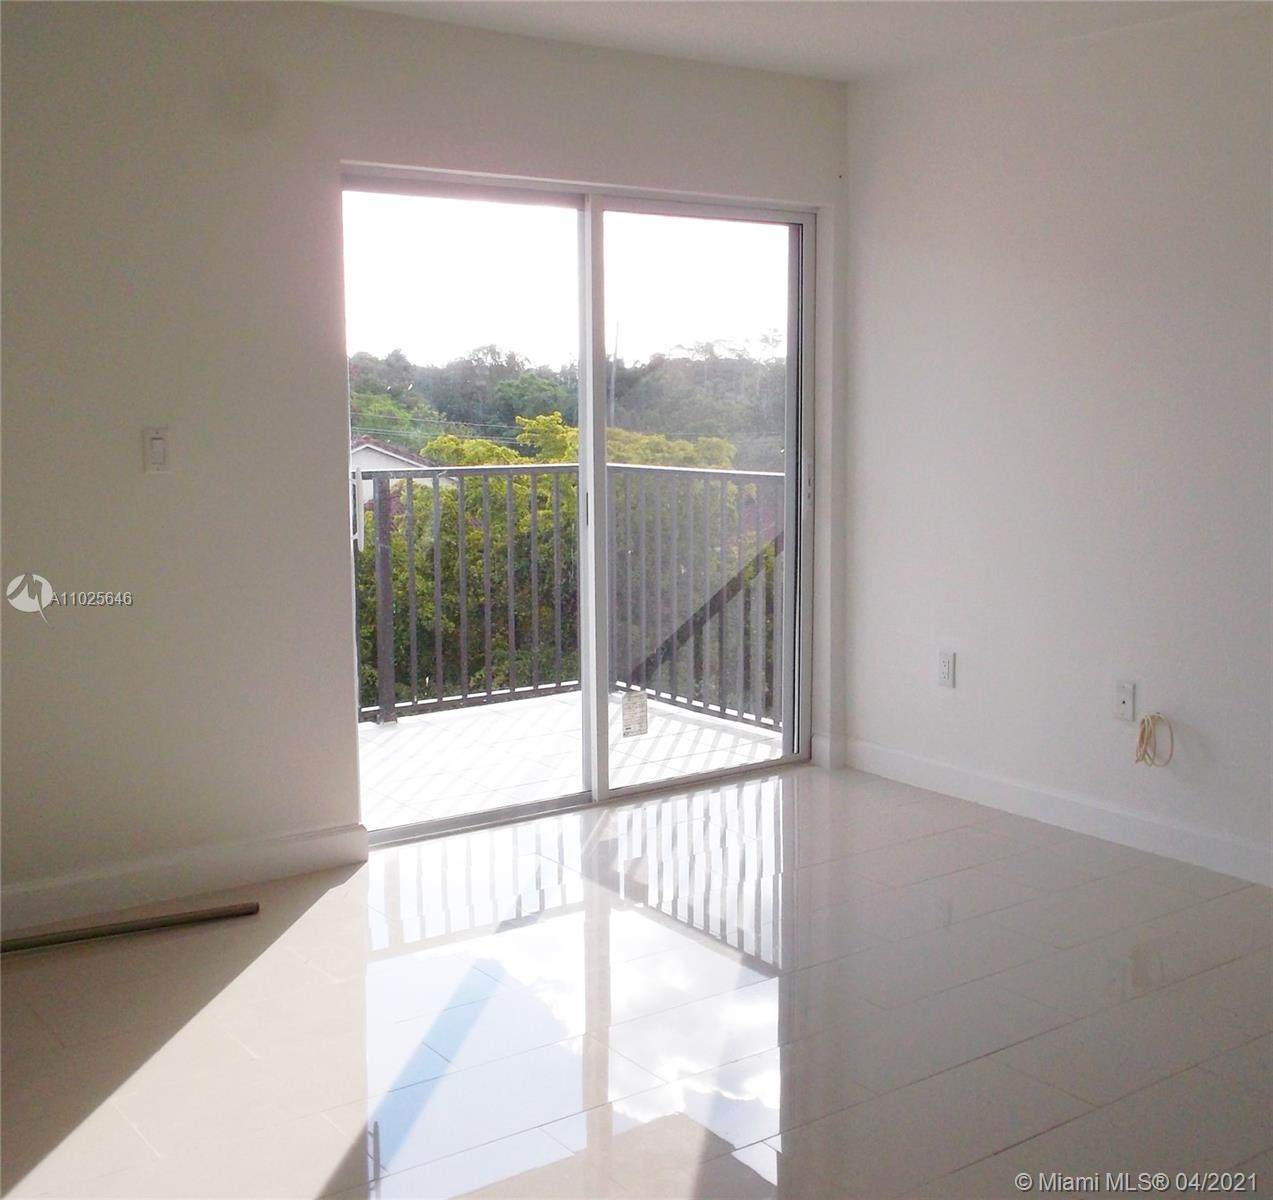 8950 8th Ave - Photo 1